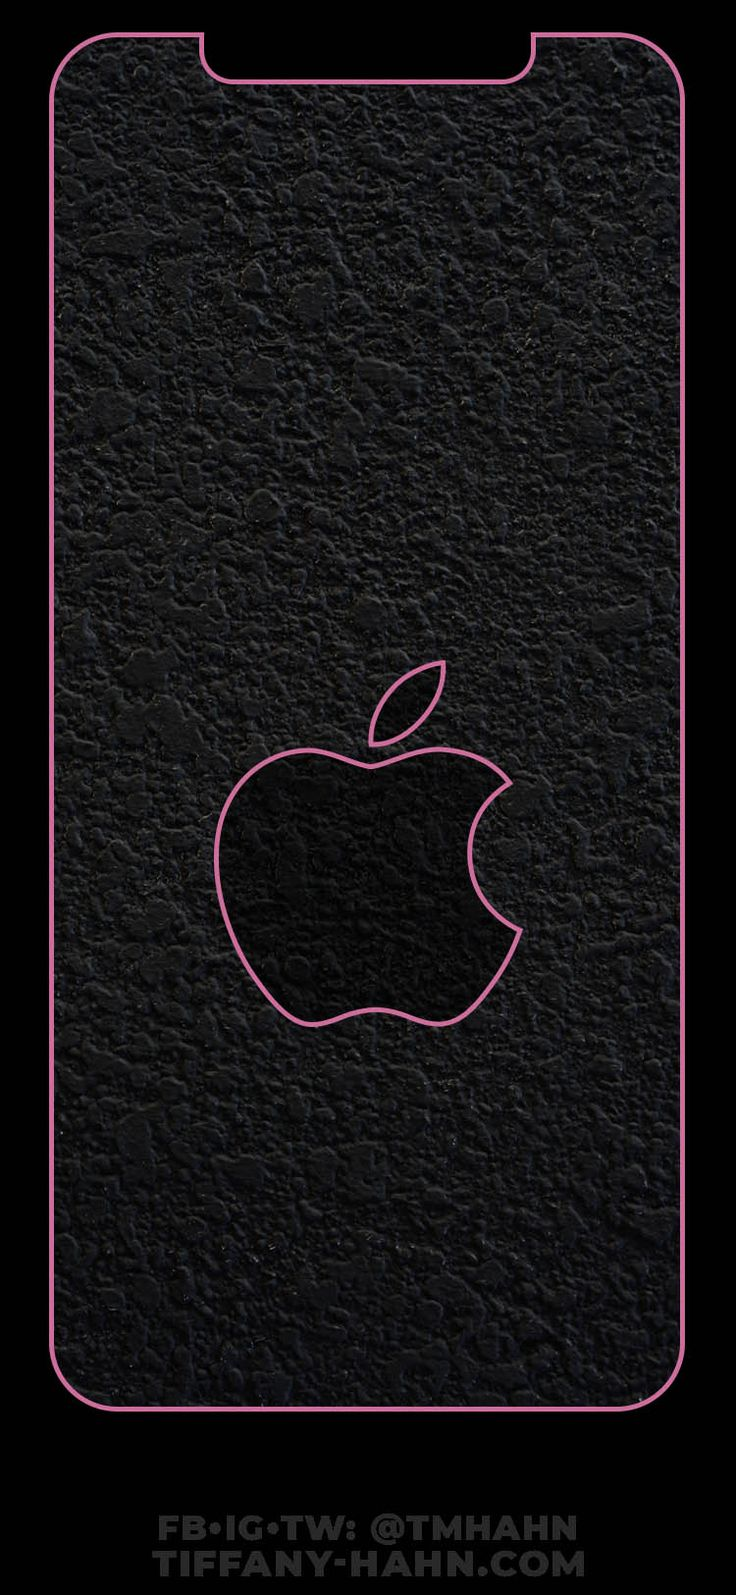 iPhone XS Max Wallpaper Pink Outline Gray Apple Lock